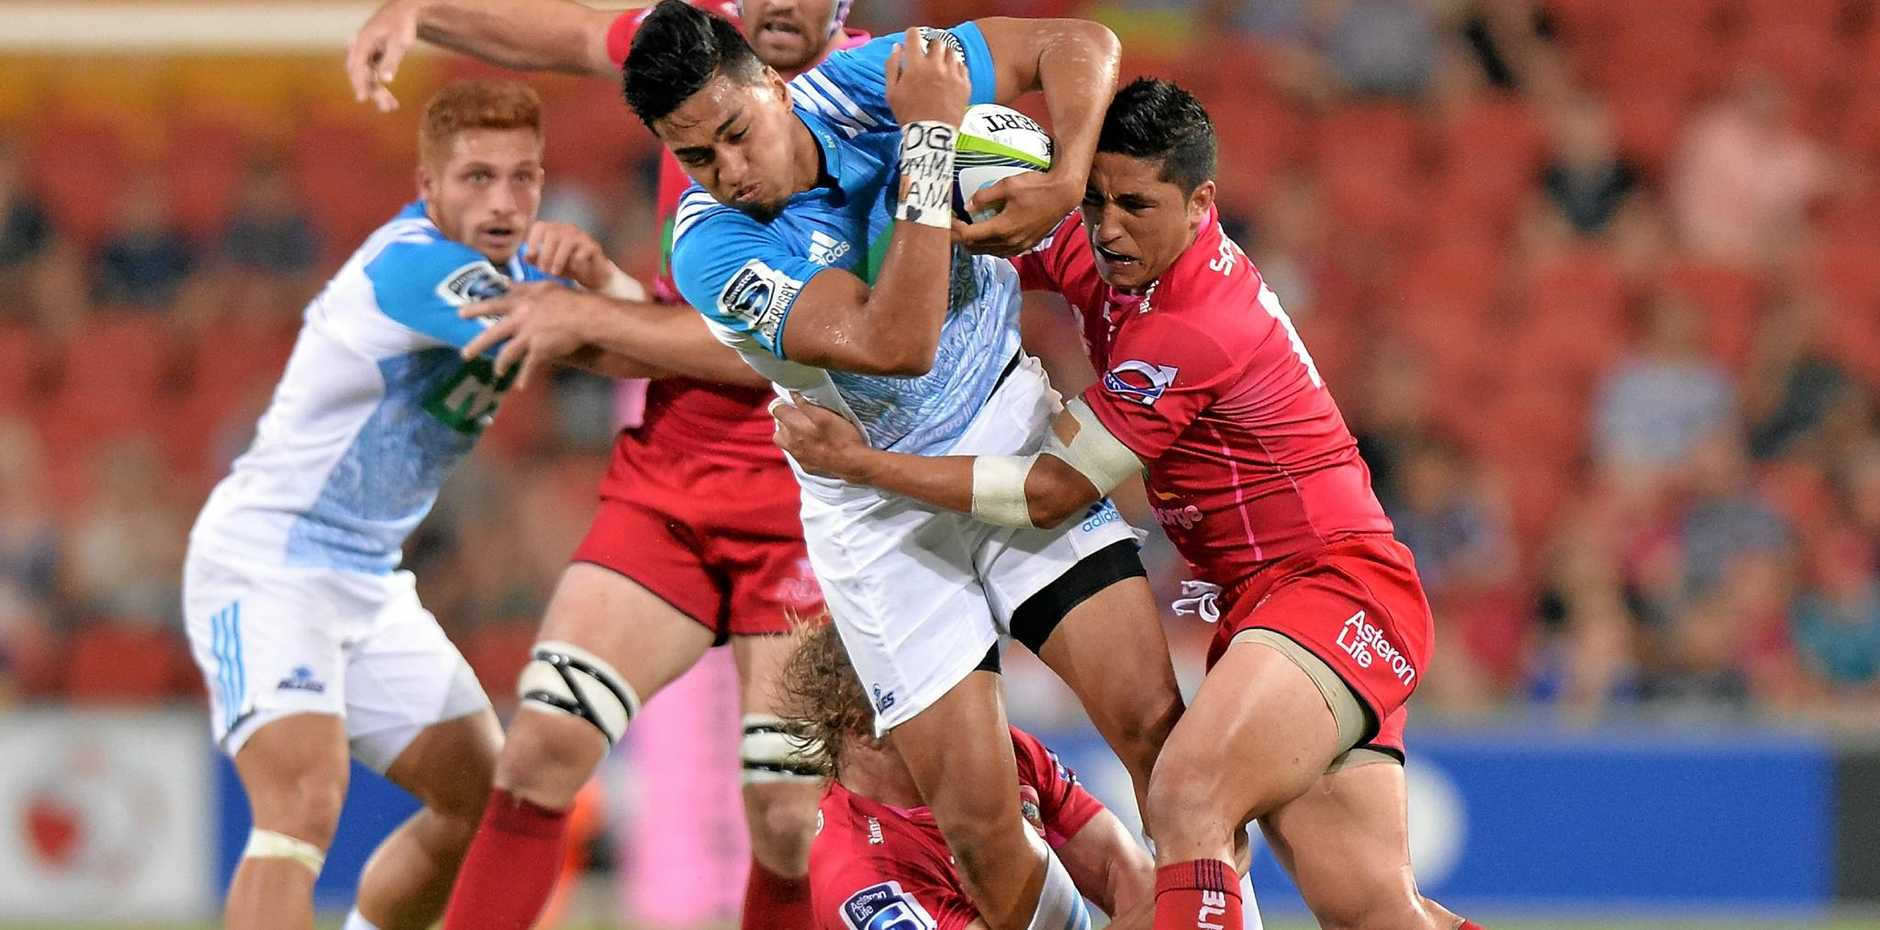 Rieko Ioane of the Blues is tackled by the Reds at Suncorp Stadium in 2016.